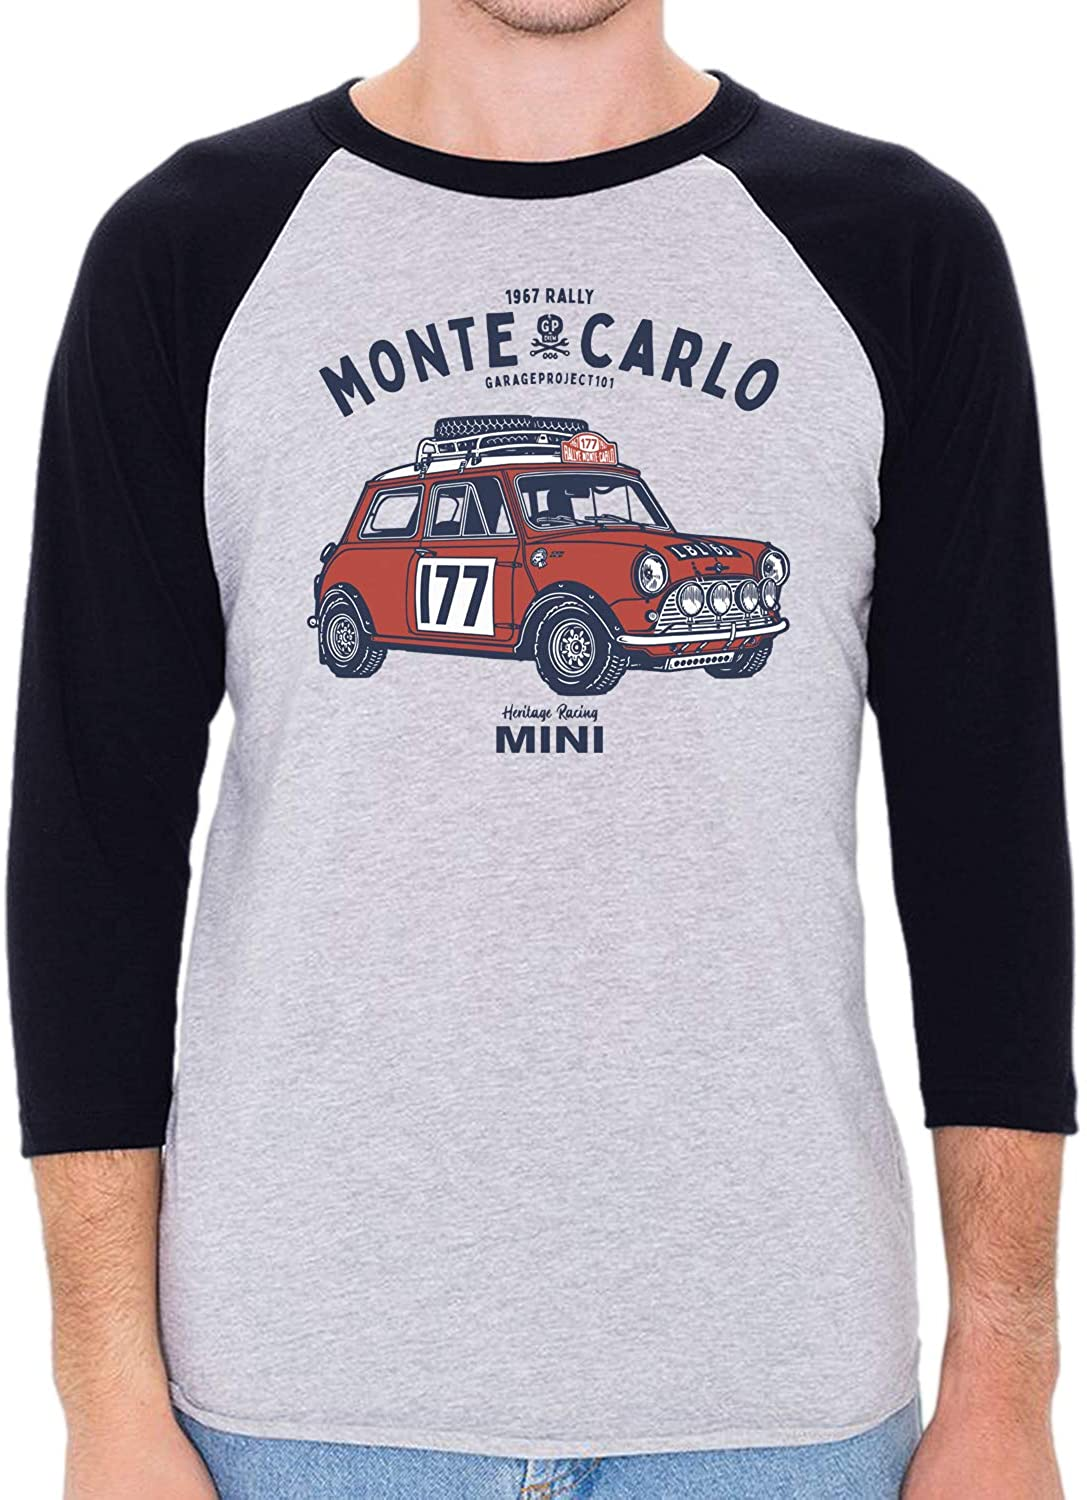 GarageProject101 GP Crew 006 Classic Mini Cooper Monte Carlo Rally 3/4 Sleeve Baseball Shirt